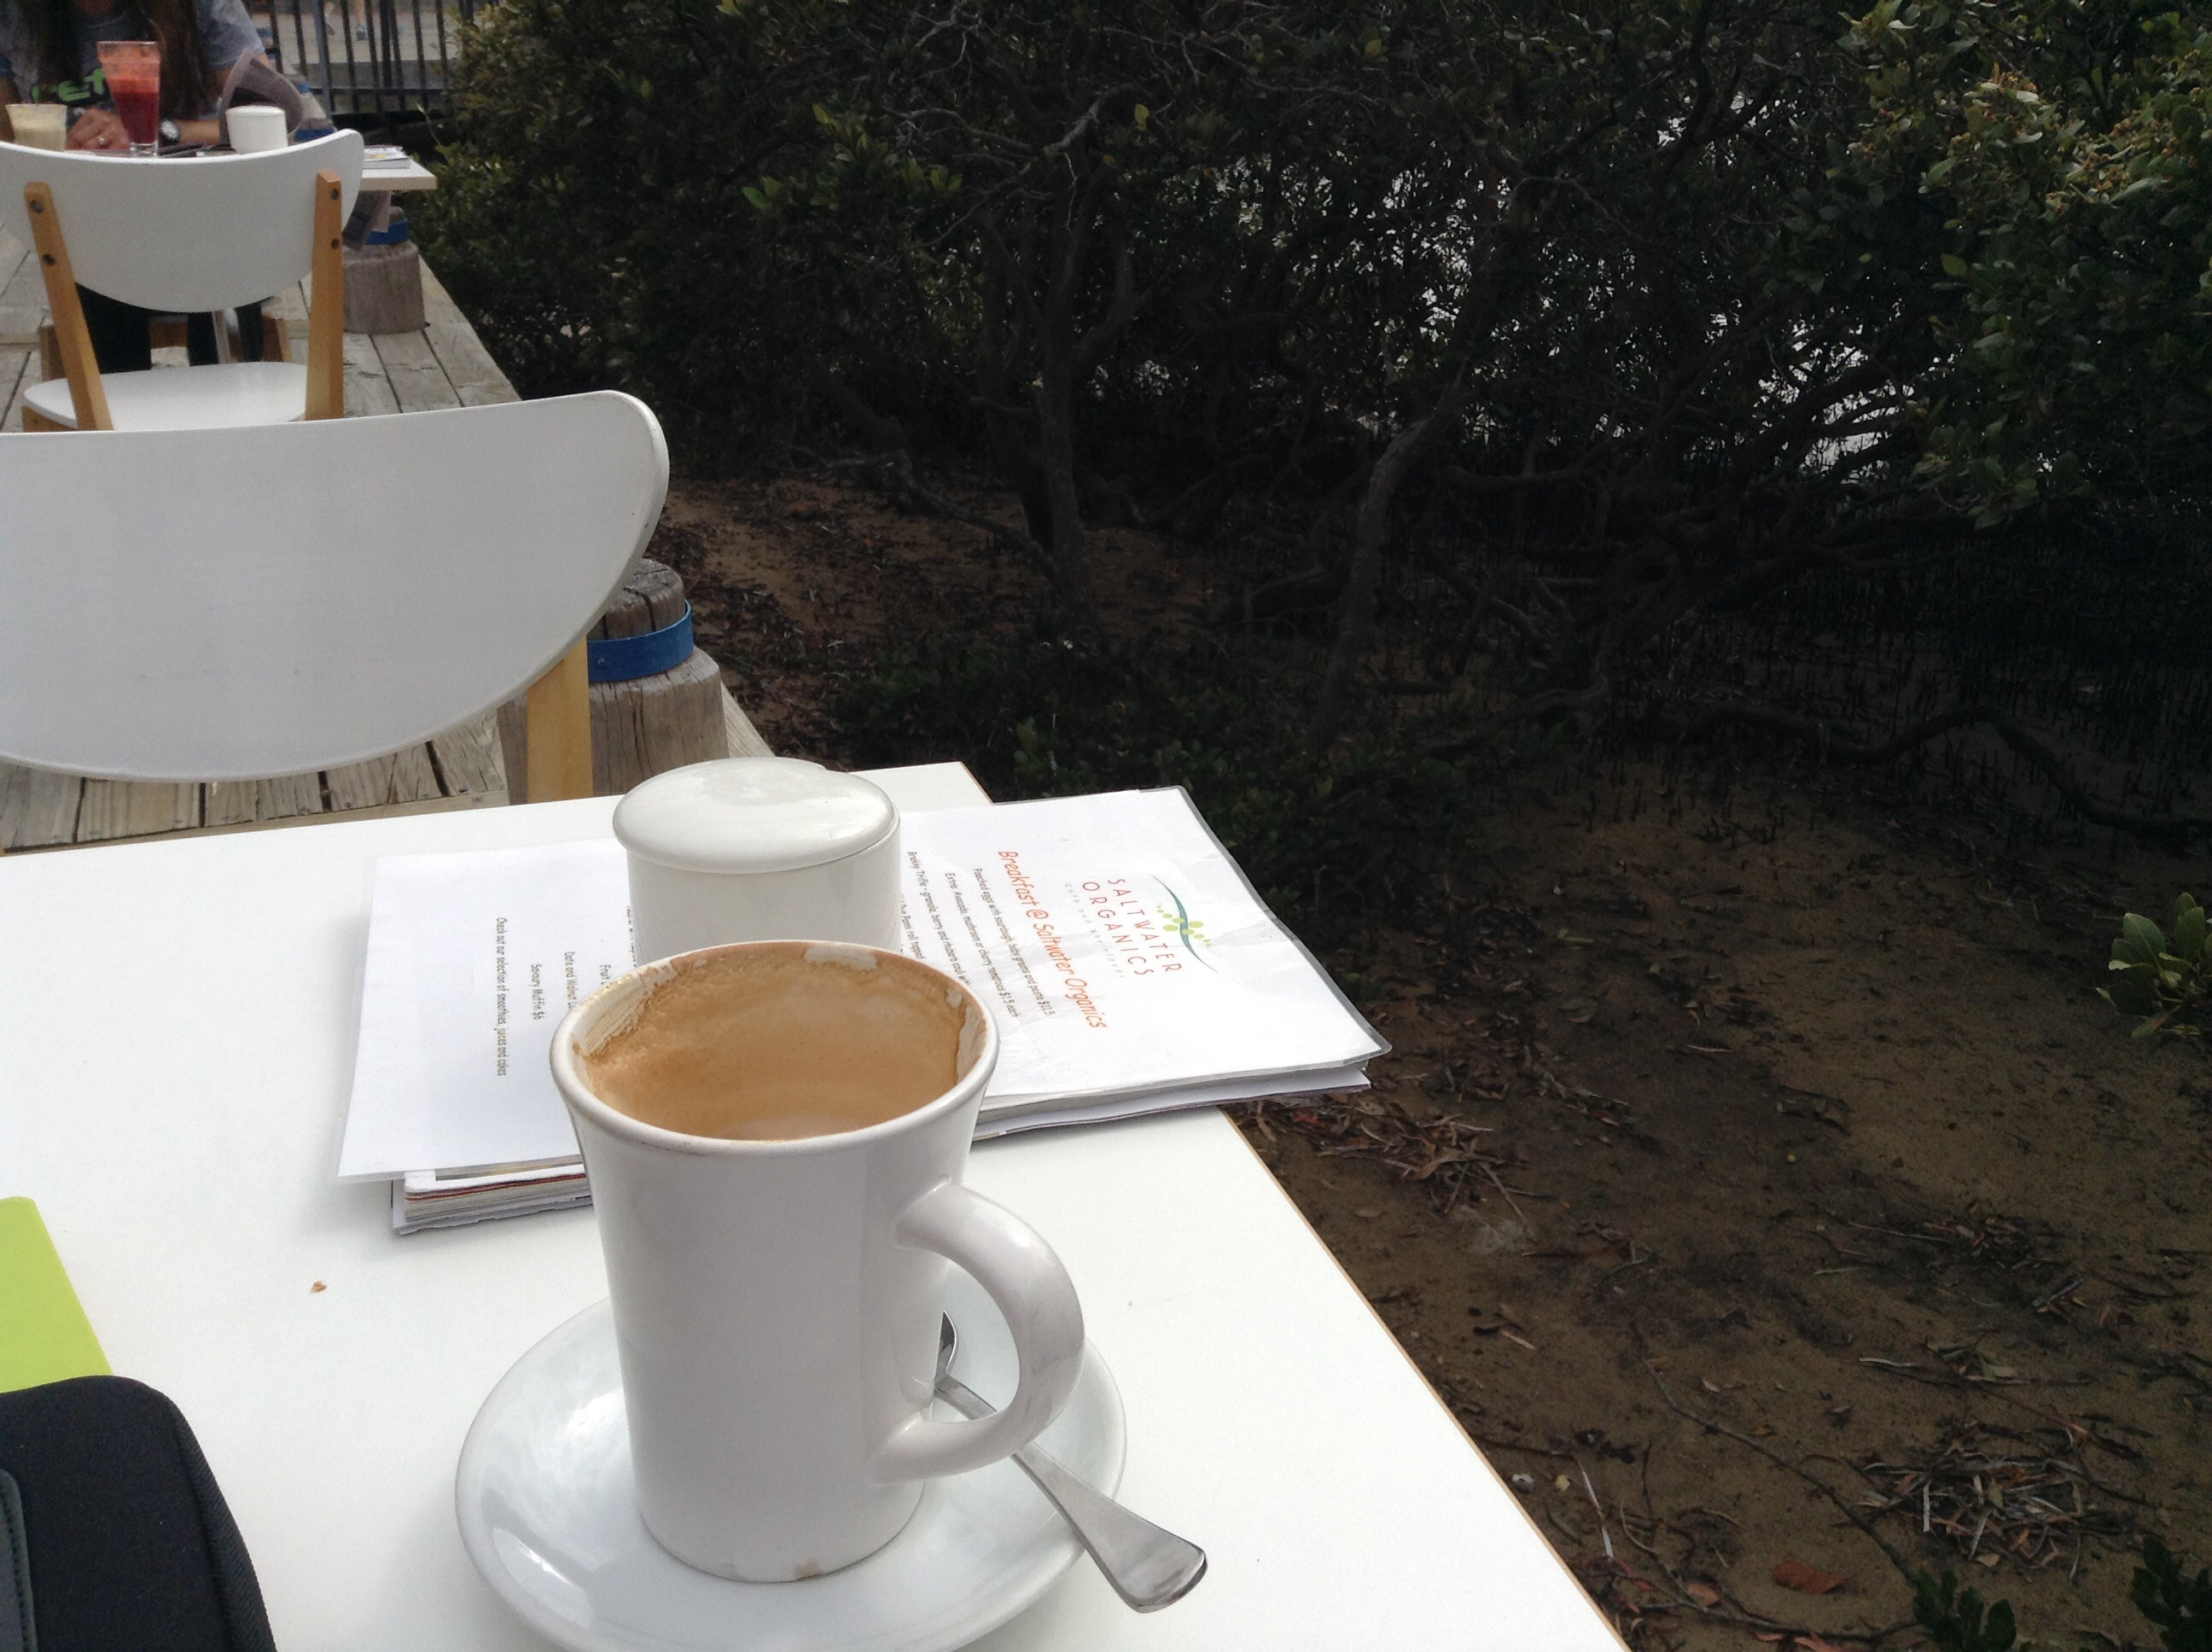 coffee cup at the mangroves, nicotine withdrawal